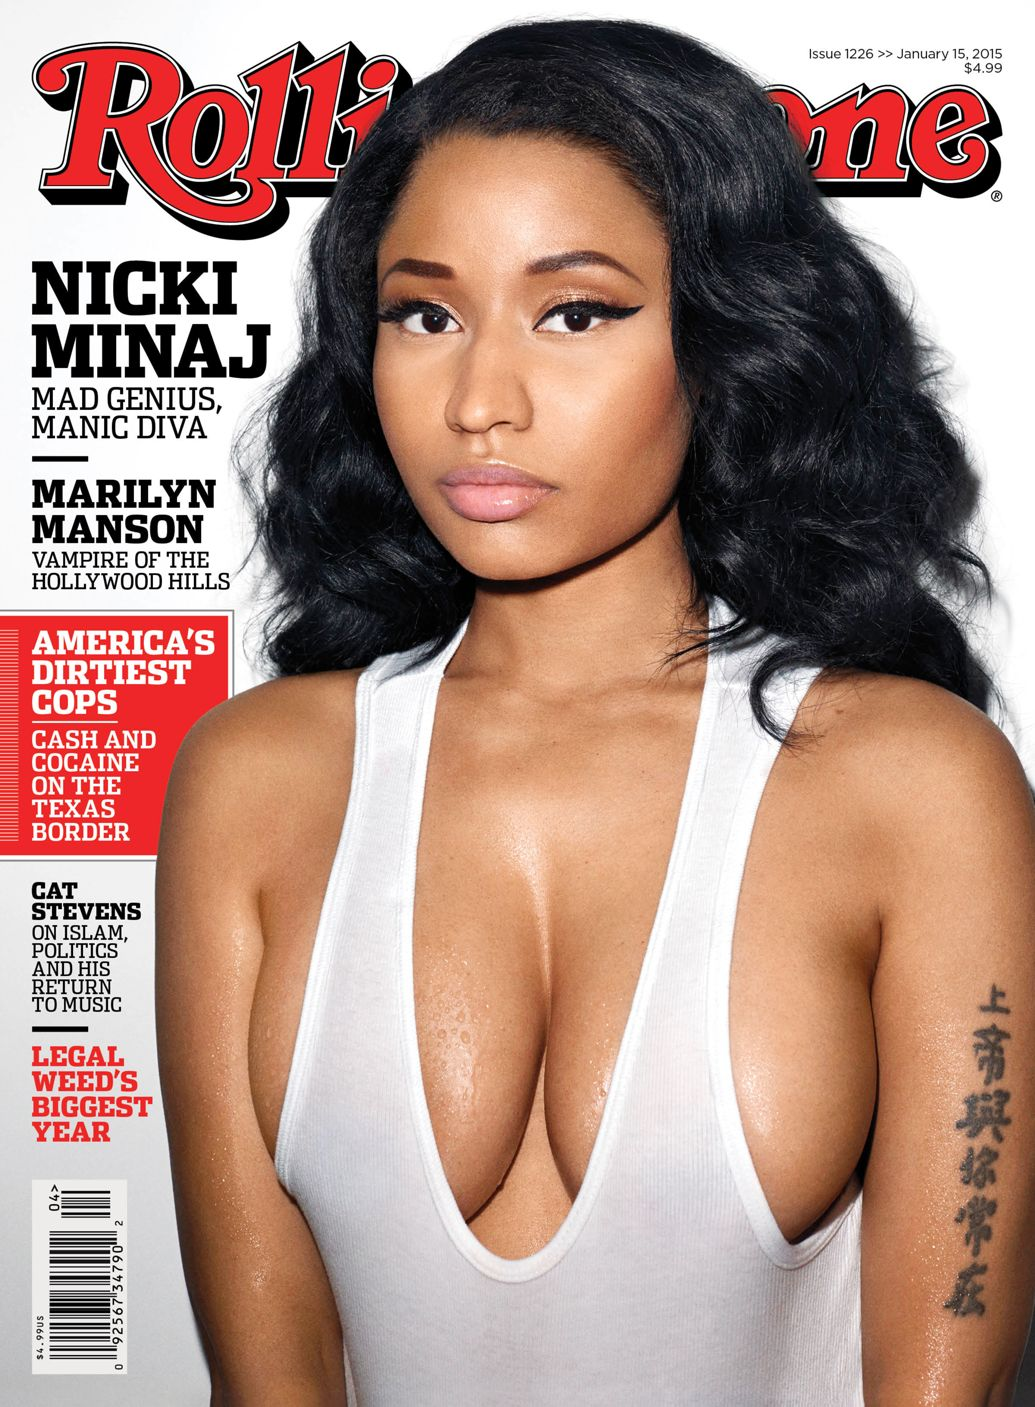 Nicki Minaj on the cover of Rolling Stone